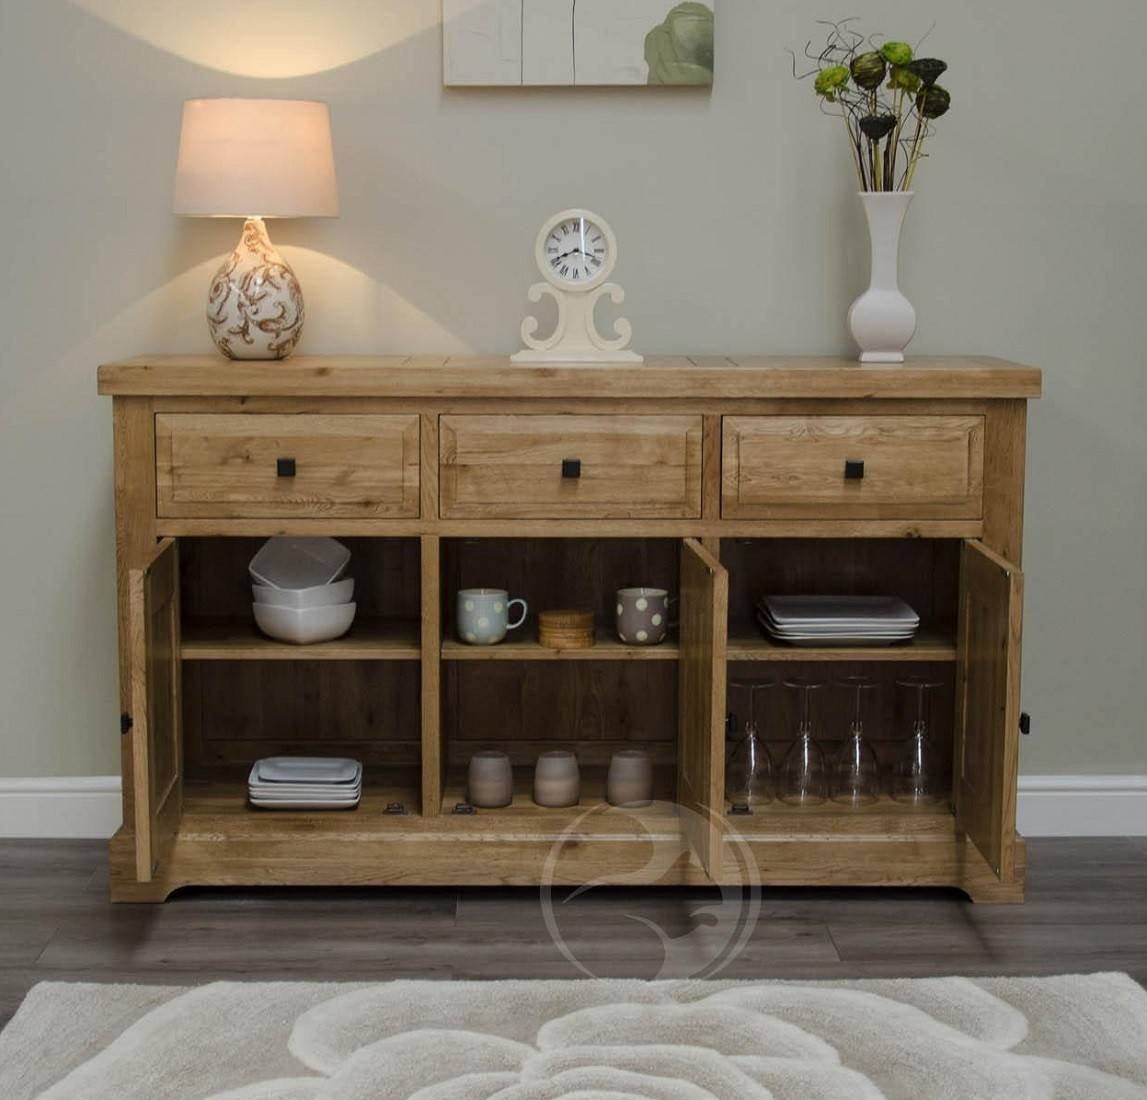 Coniston Rustic Solid Oak Large Sideboard | Oak Furniture Uk regarding Rustic Oak Large Sideboards (Image 4 of 15)